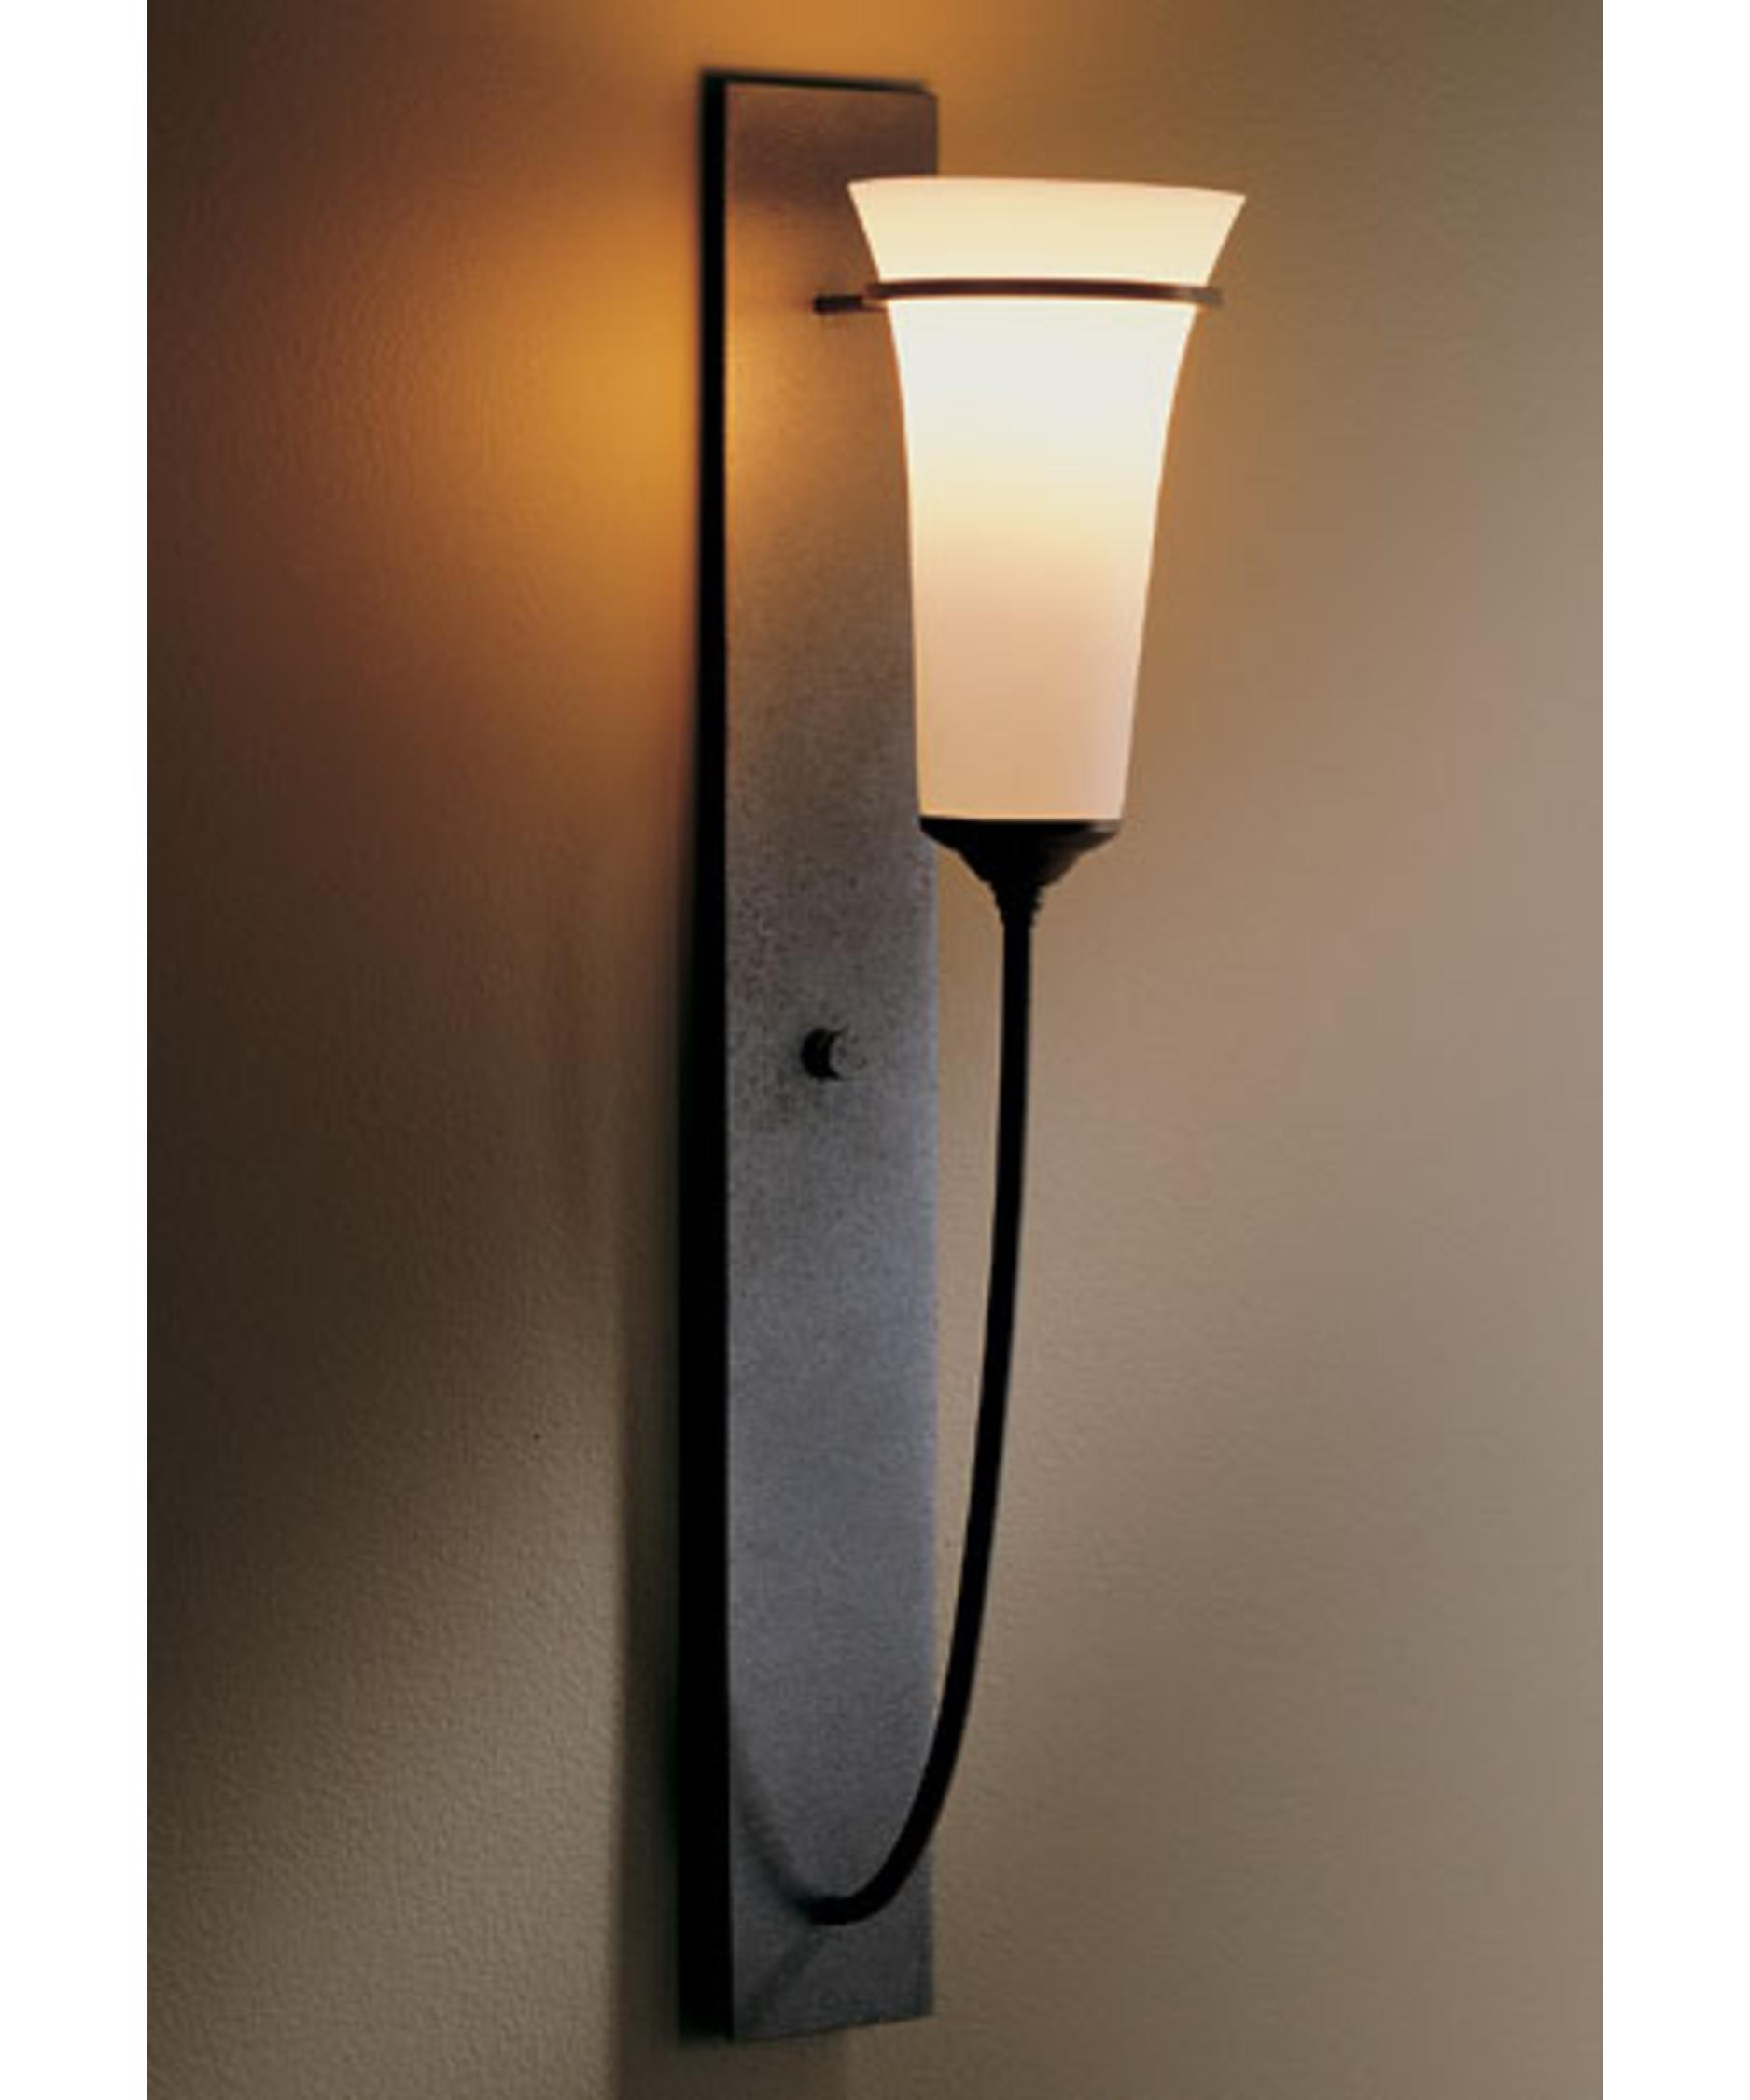 hubbardton forge banded 4 inch wide wall sconce capitol lighting - Hubbardton Forge